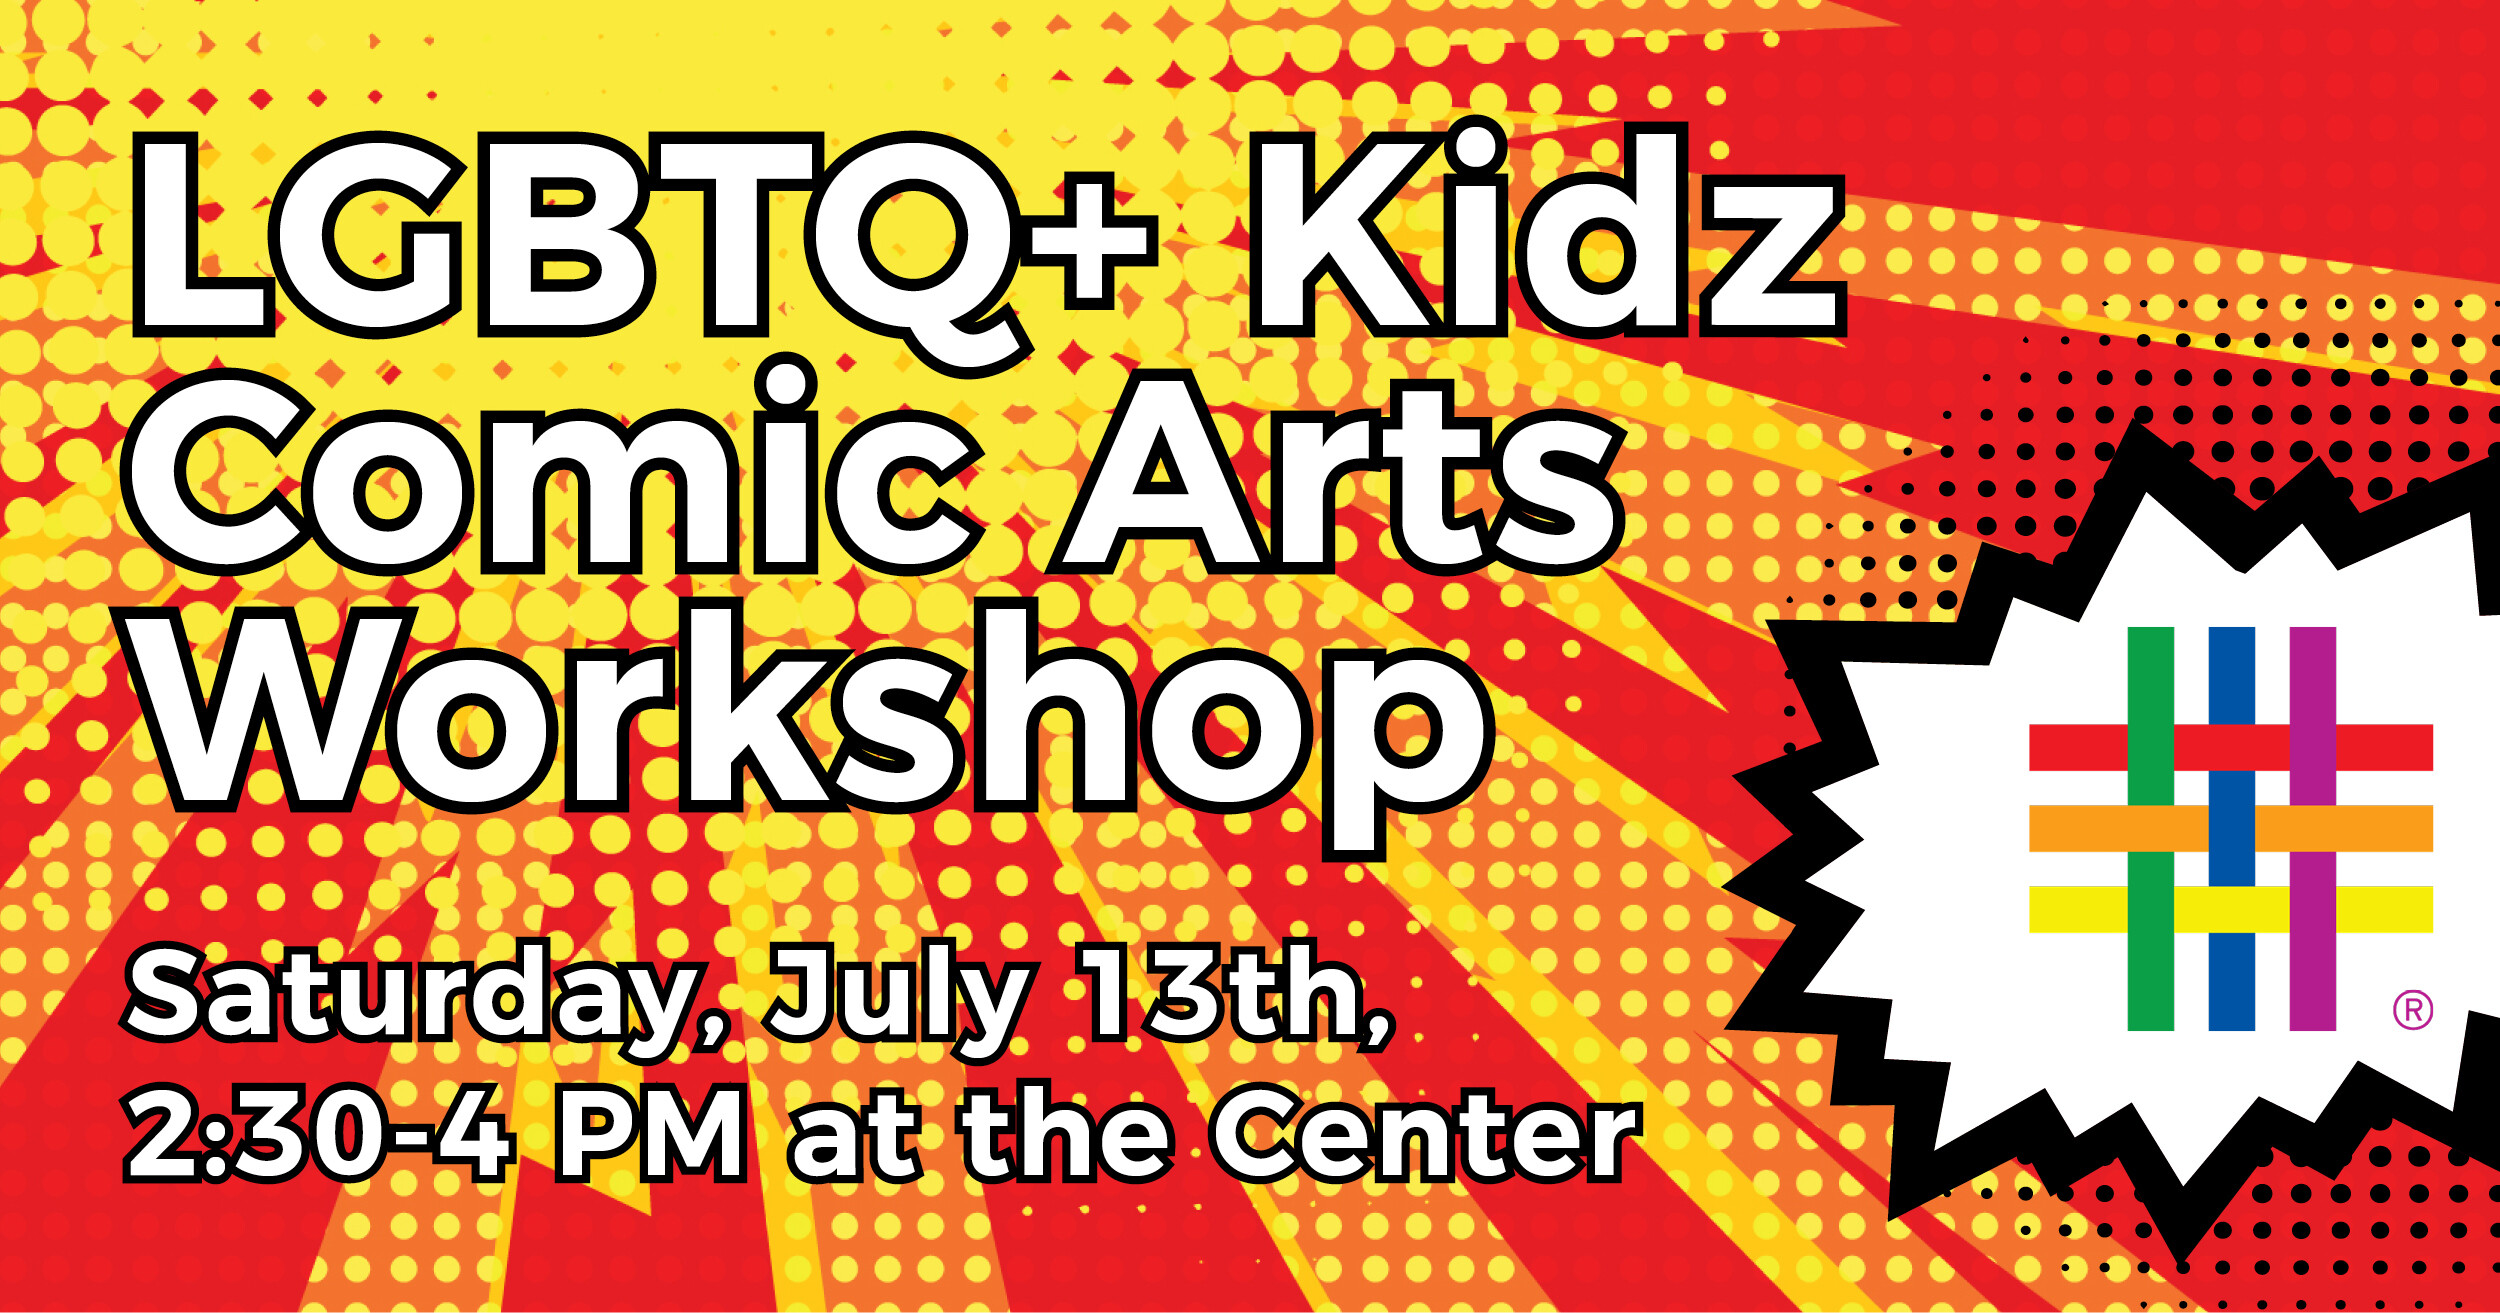 LGBTQ+ Kidz Comic Arts Workshop at Brooklyn Community Pride Center